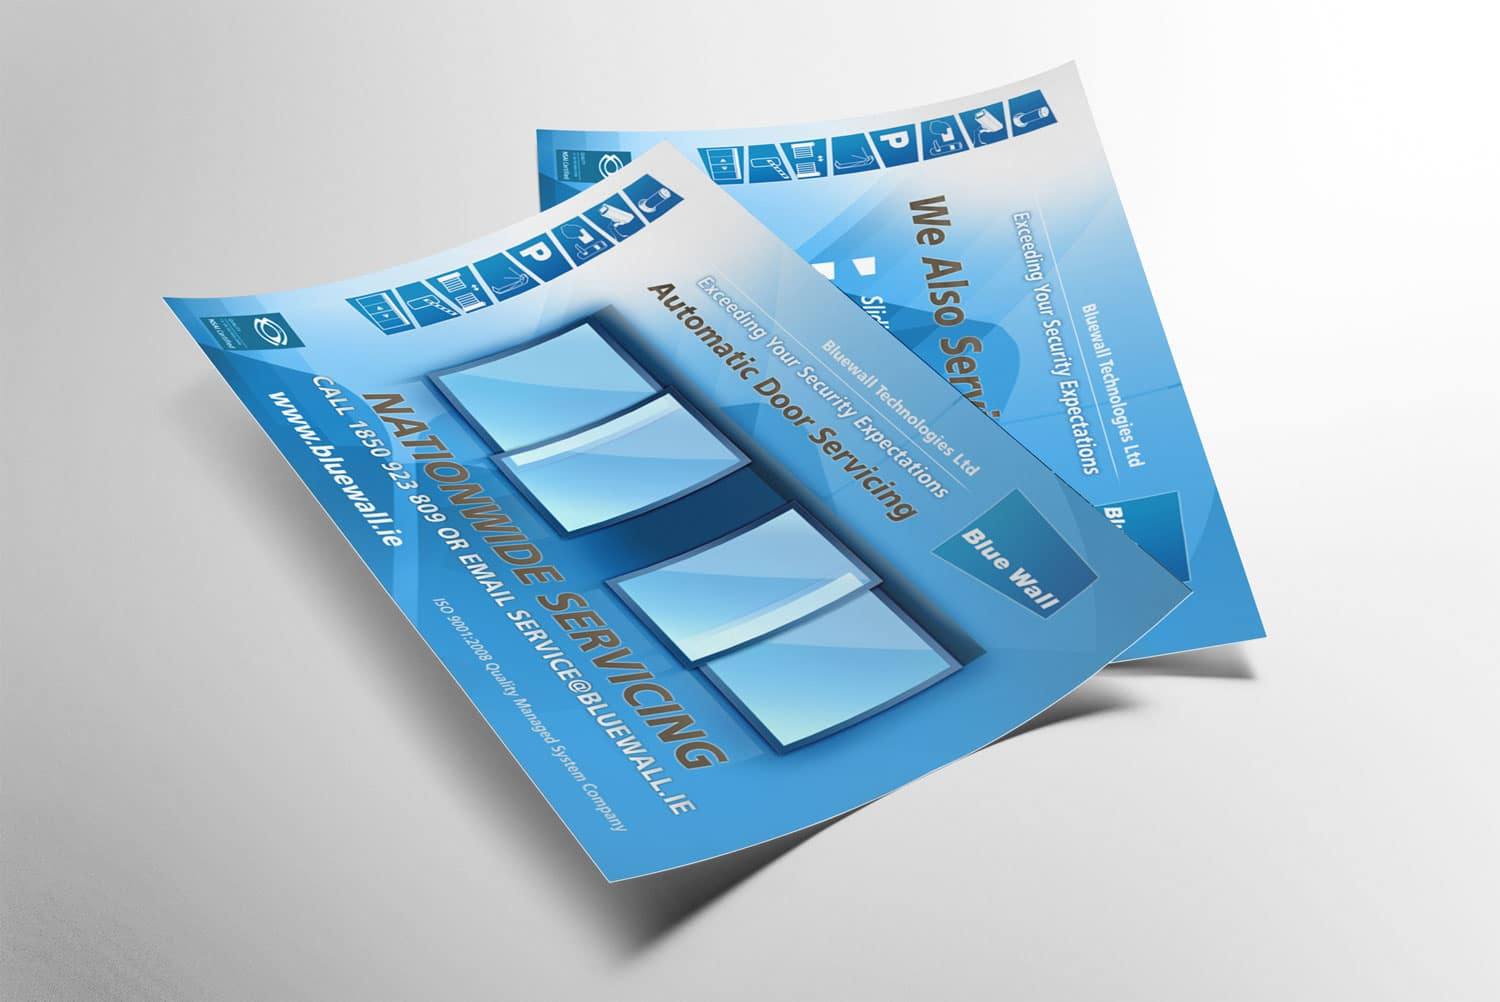 Bluewall-Display-flyers-2